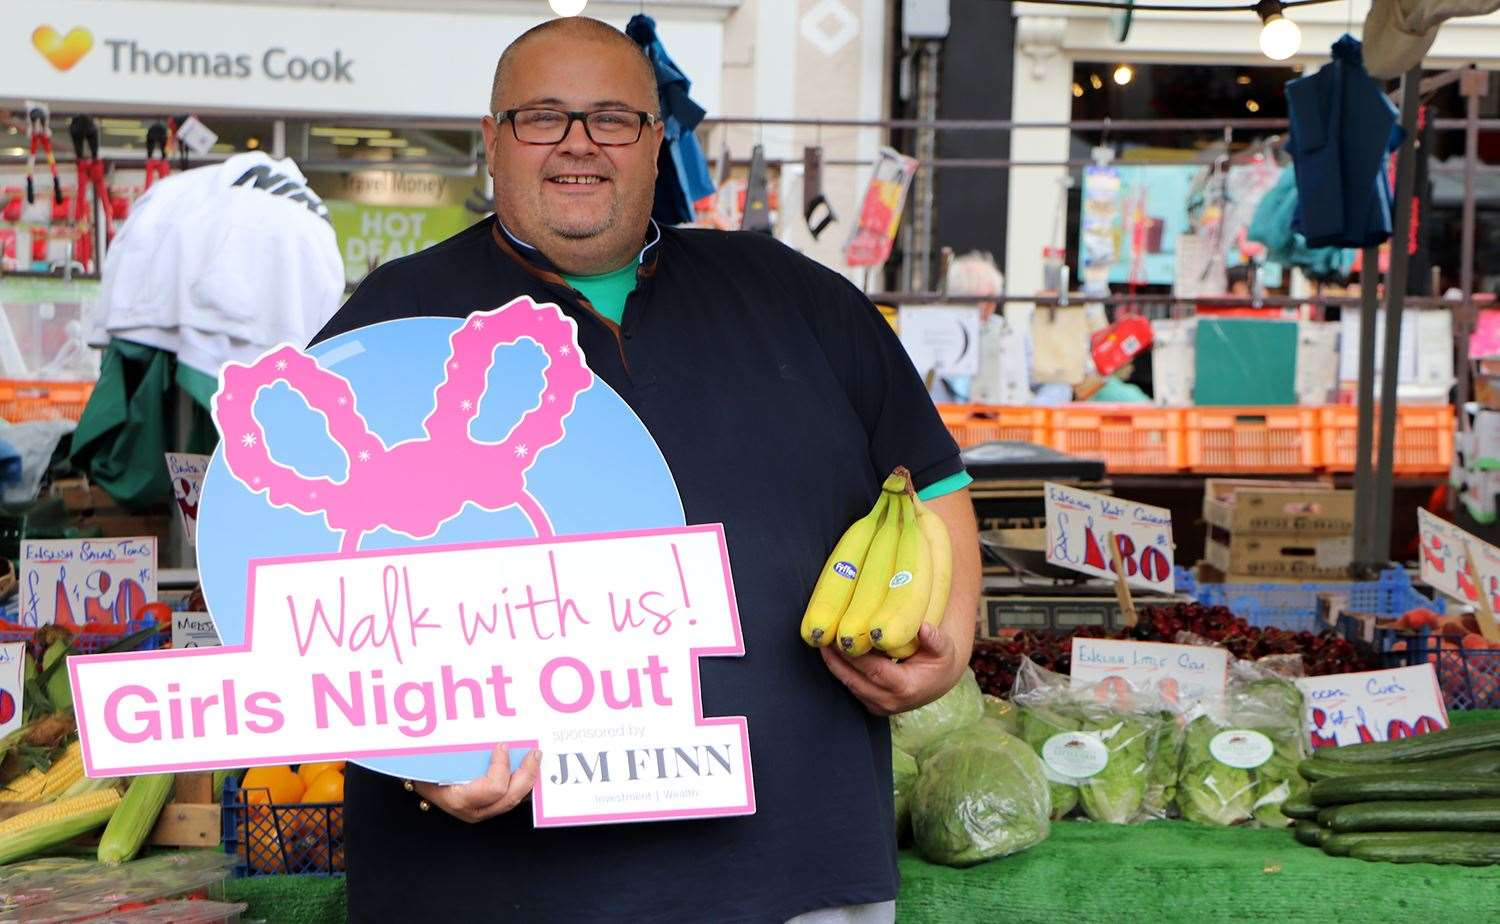 Tony Wilson, who works on a fruit and vegetable stall on the Bury St Edmunds market is donating bananas to Girls Night Out.